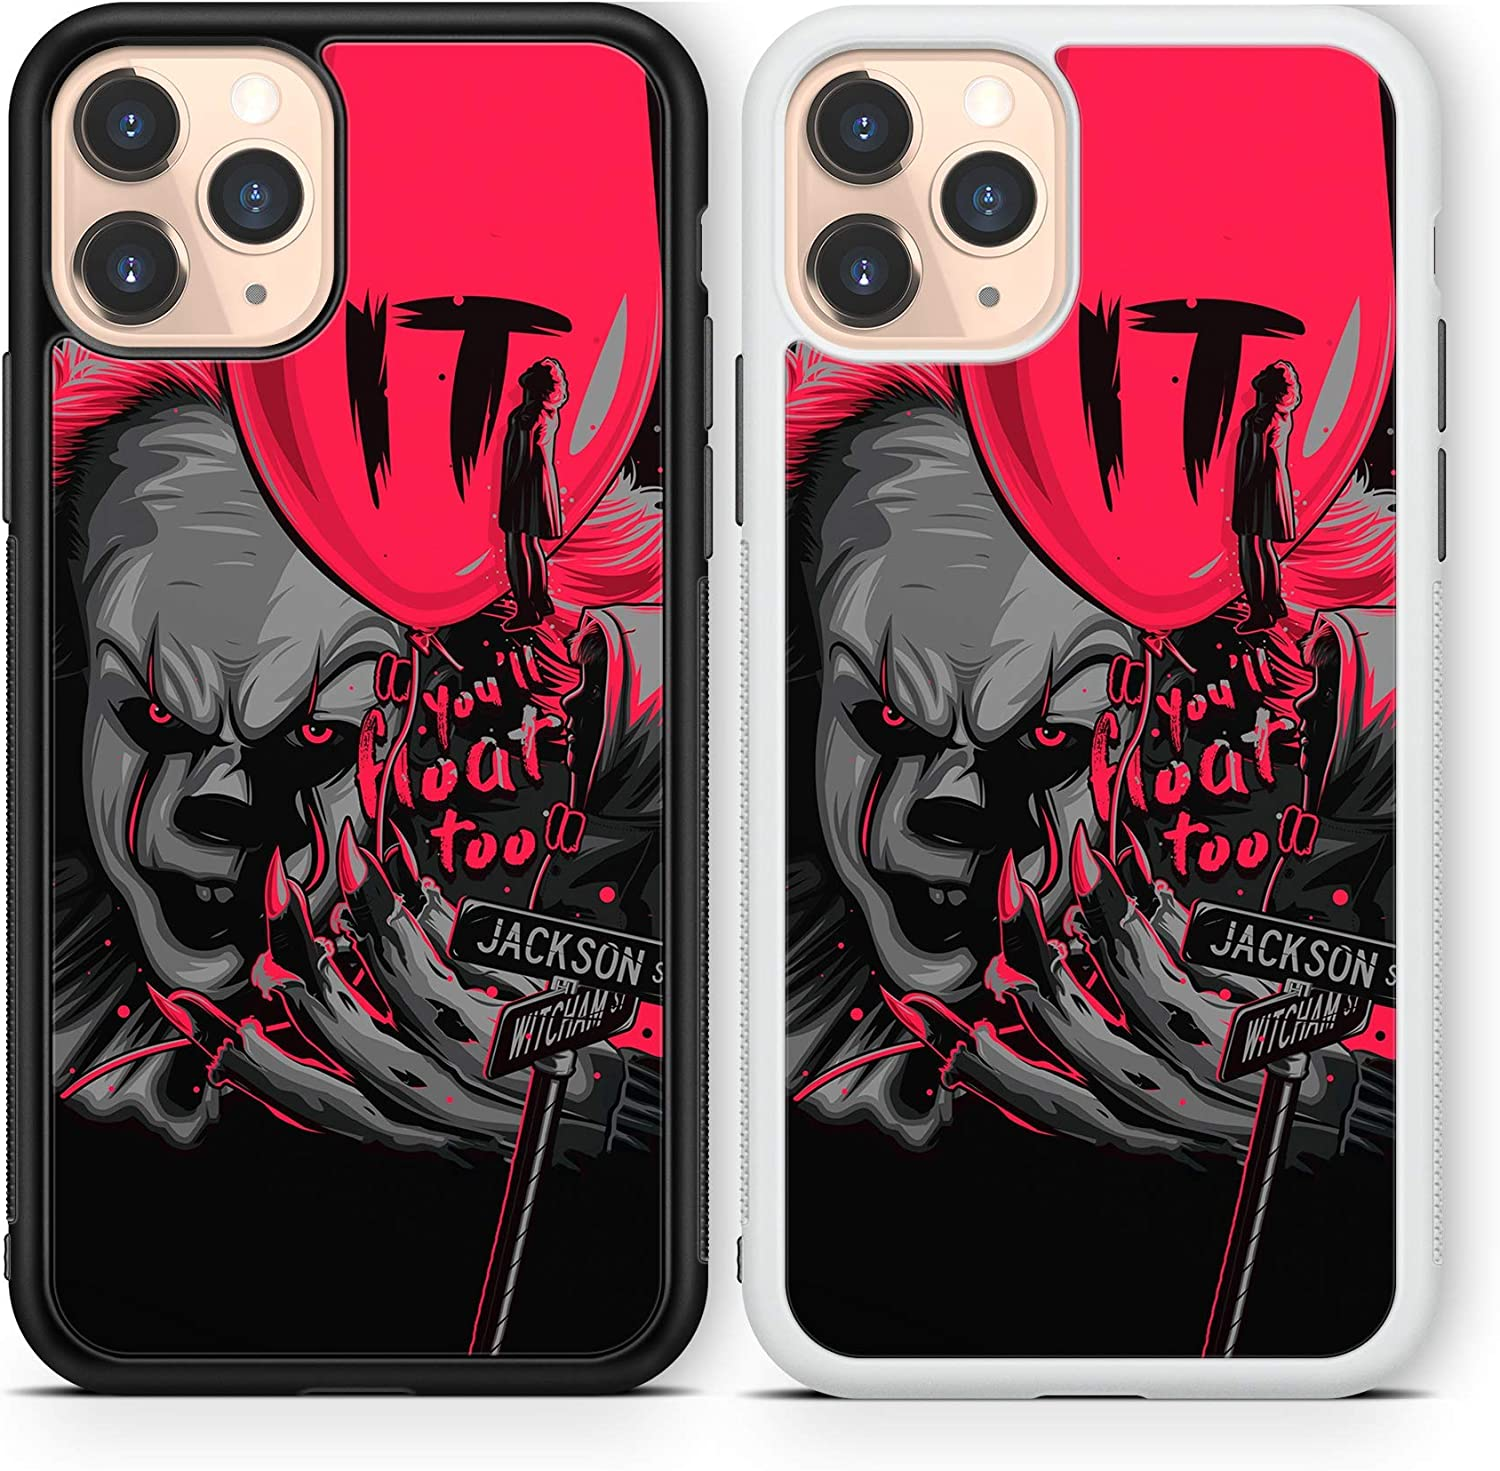 Halloween Scary case Compatible with iPhone 12 pro max Mini 11 XR X 7 8 SE Galaxy S20 Ultra S10 Note 10 20 TPU Cover SN193 (White, for iPhone 12 Pro max)